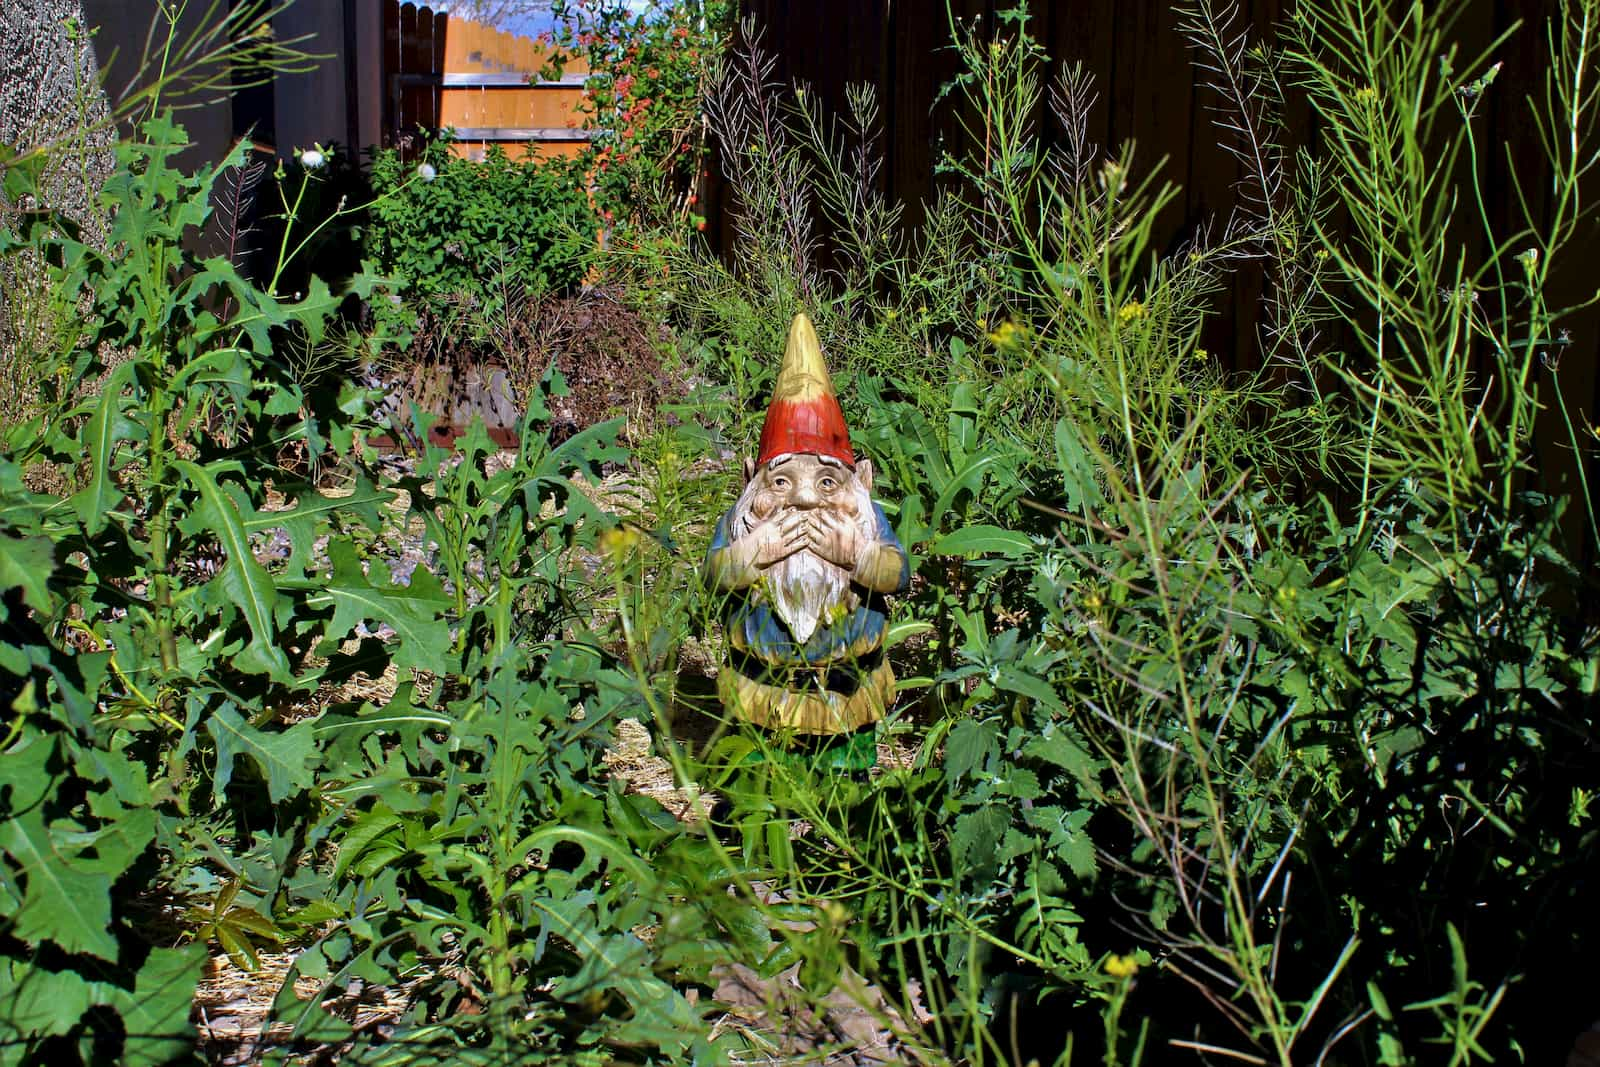 garden gnome among weeds